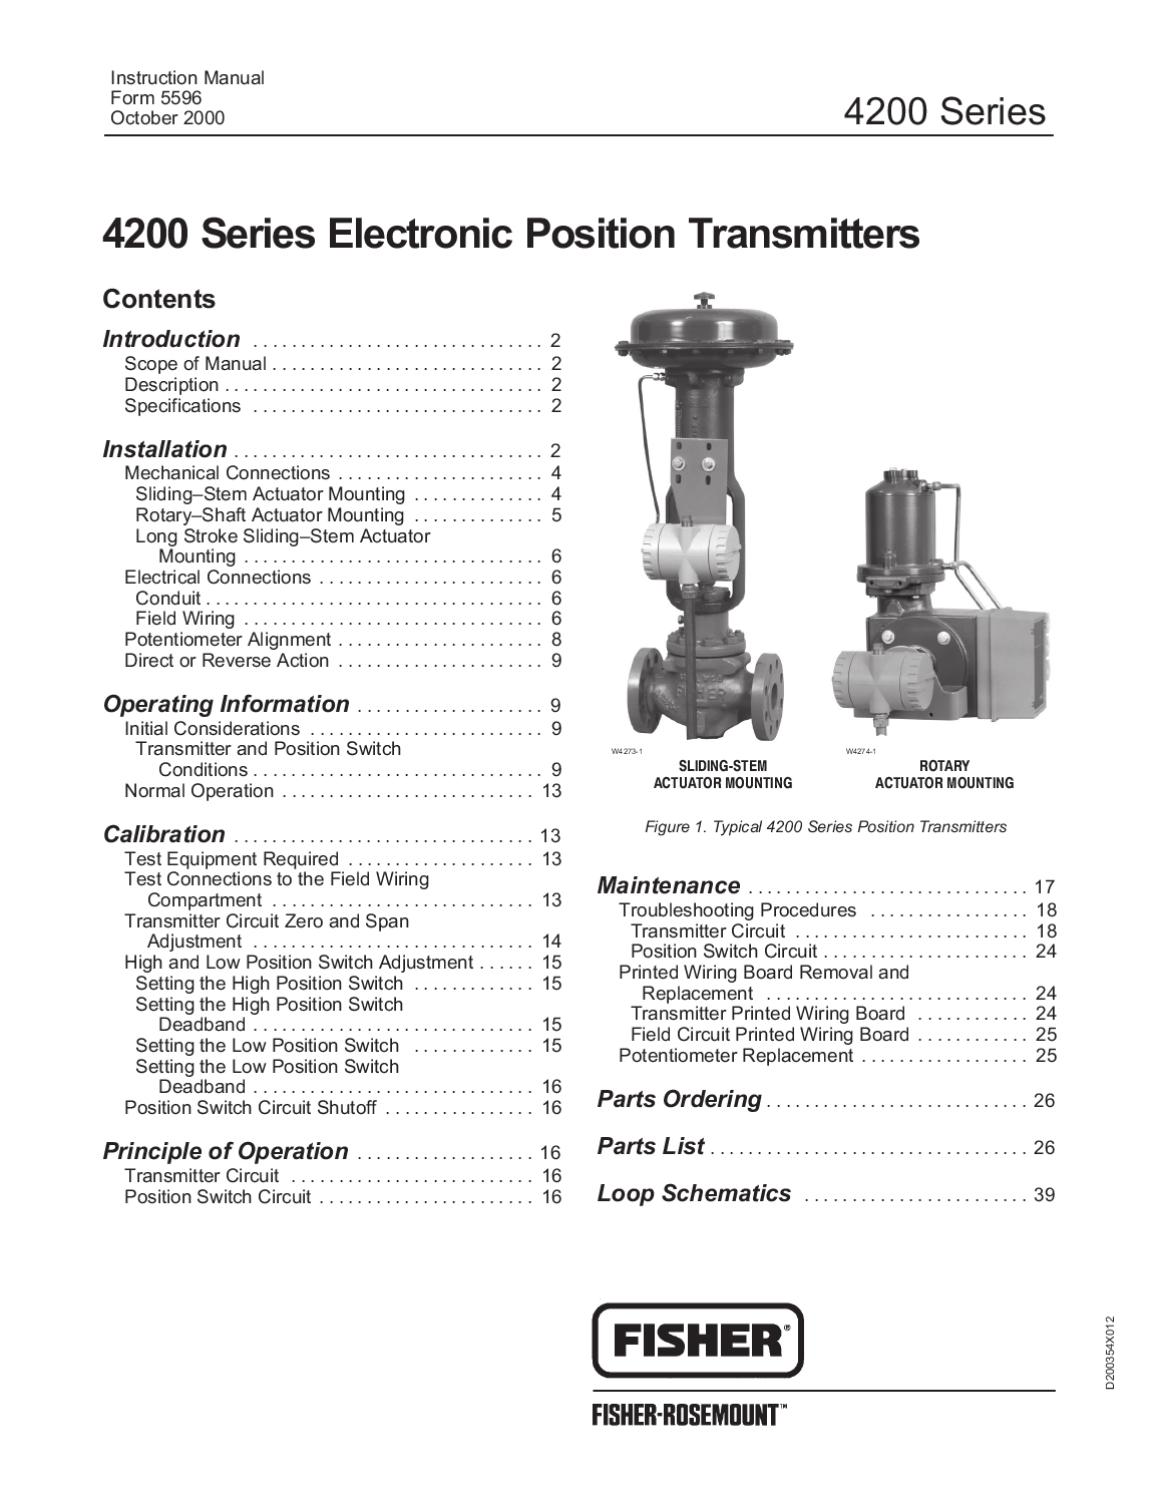 4200 Transmitter Instruction Manual By Rmc Process Controls Dvc 2000 Positioner Wiring Diagram Filtration Inc Issuu